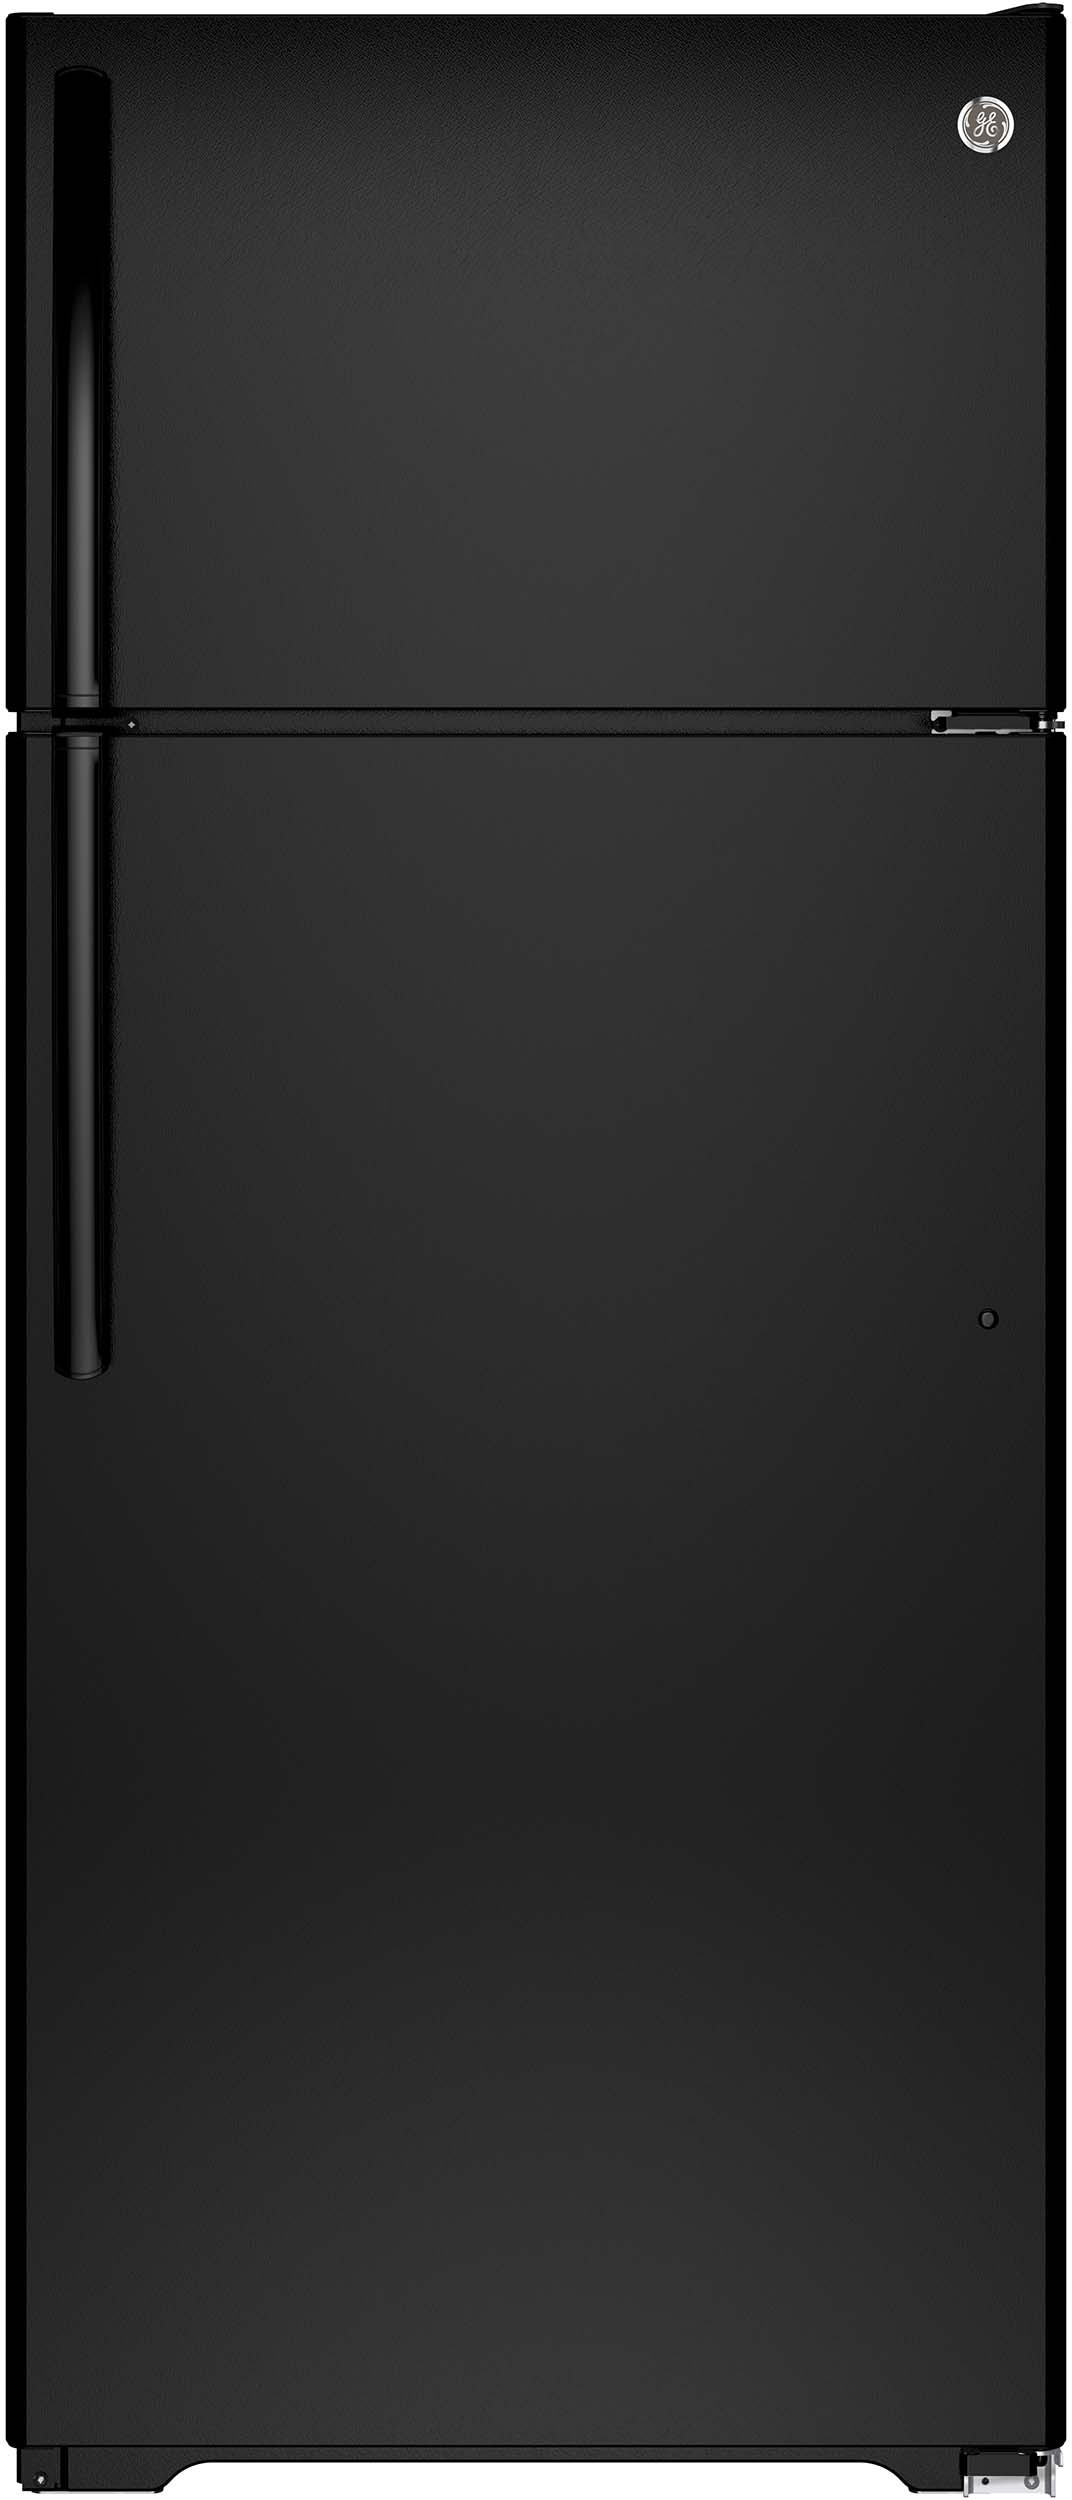 Black GE Refrigerators